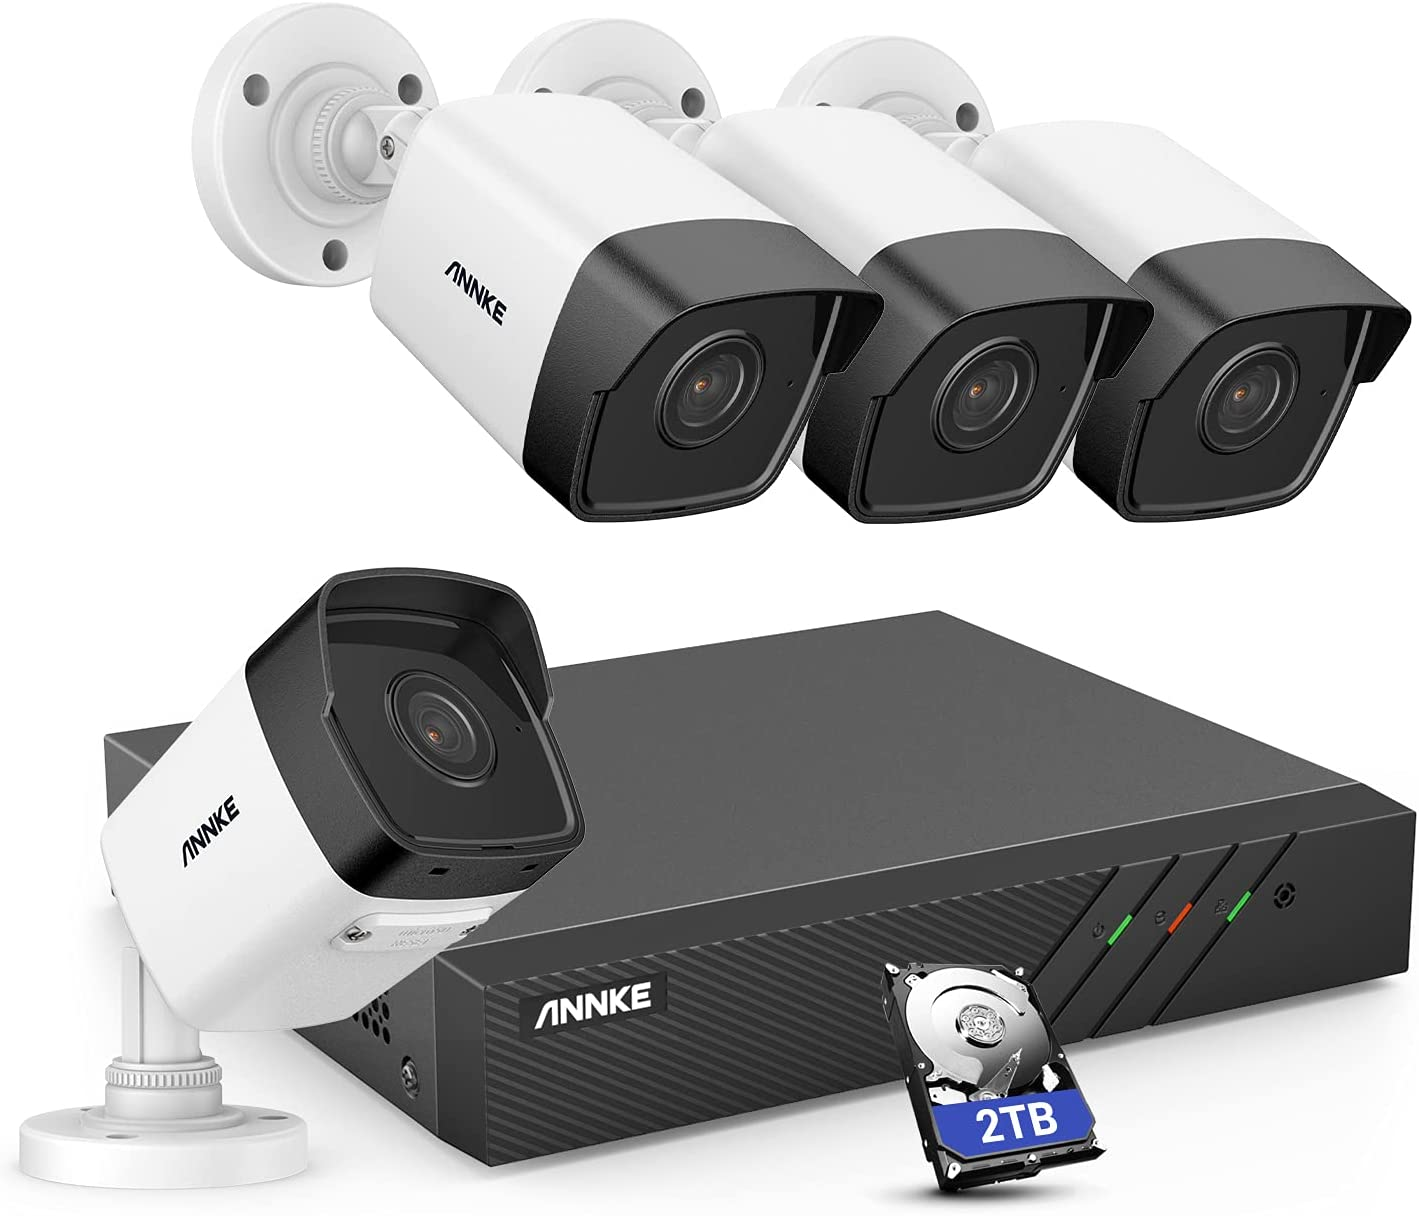 ANNKE H500 8CH Bullet PoE Home Security Camera System with 6MP H.265+ NVR, 4X 5MP Outdoor CCTV IP Camera, 2TB HDD, Audio Recording, 100ft EXIR 2.0 Color Night Vision, IP67 Weatherproof